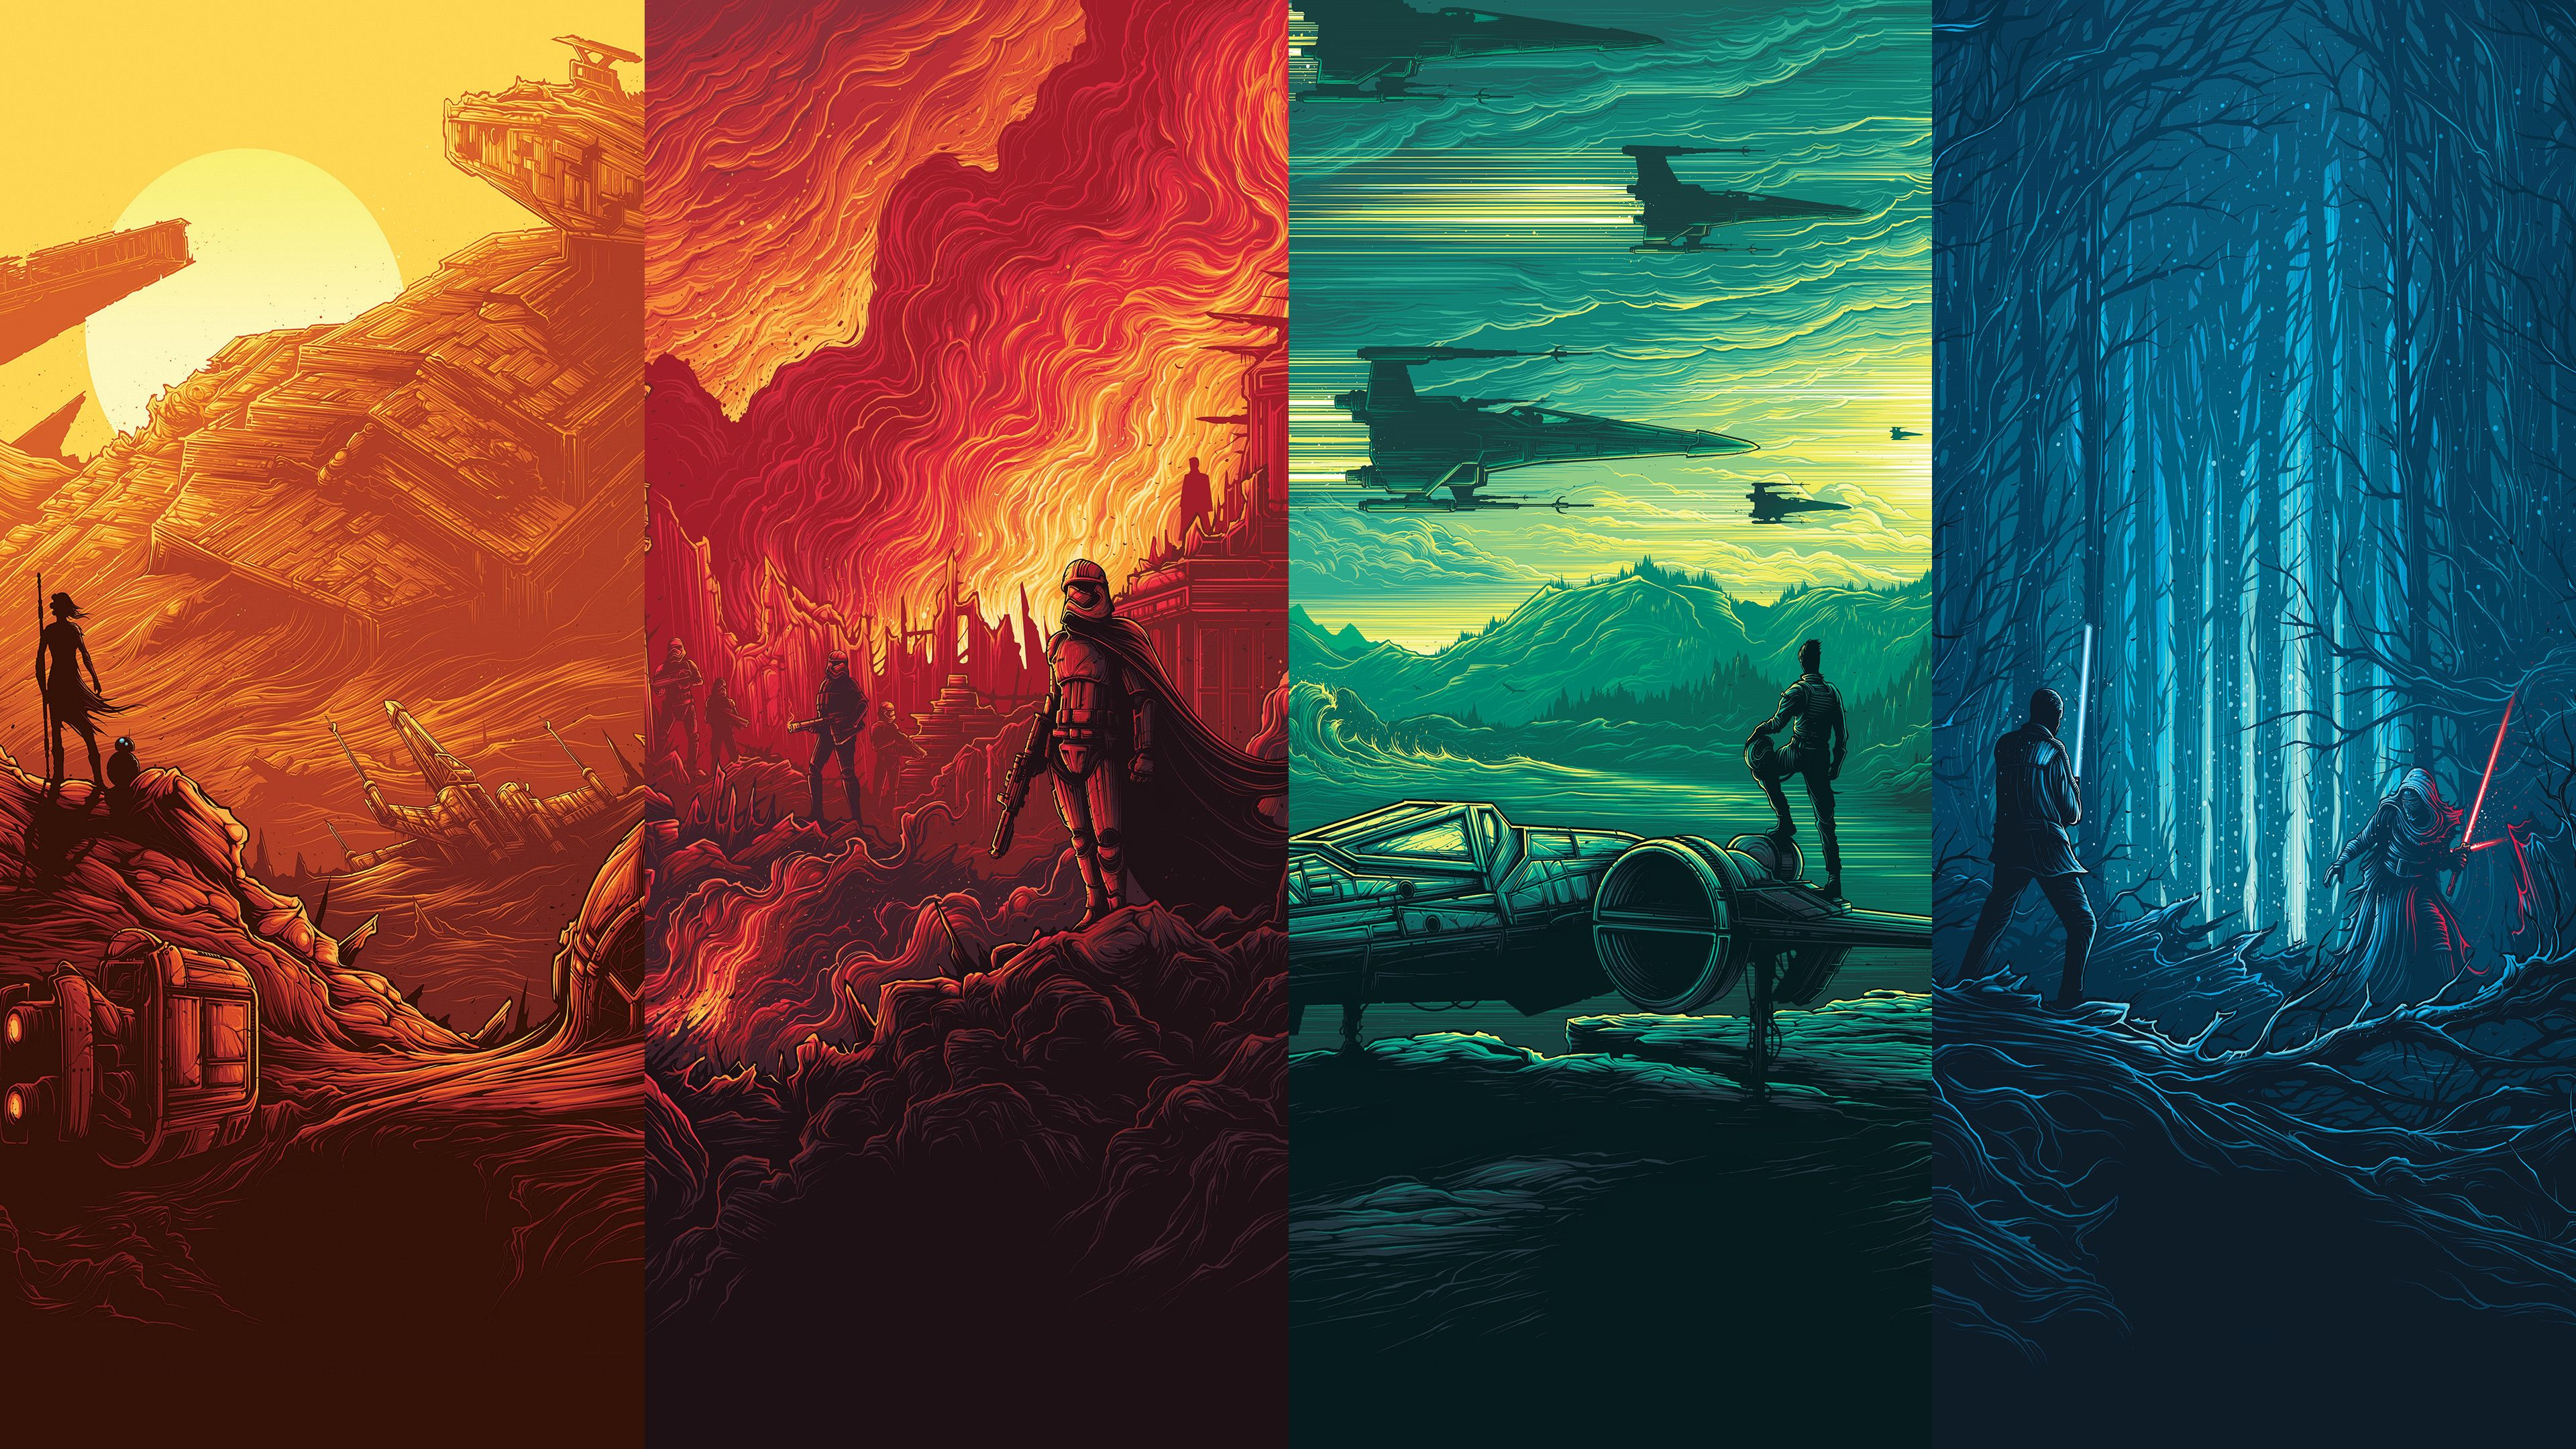 Wallpapers I made of those epic Imax Star Wars posters